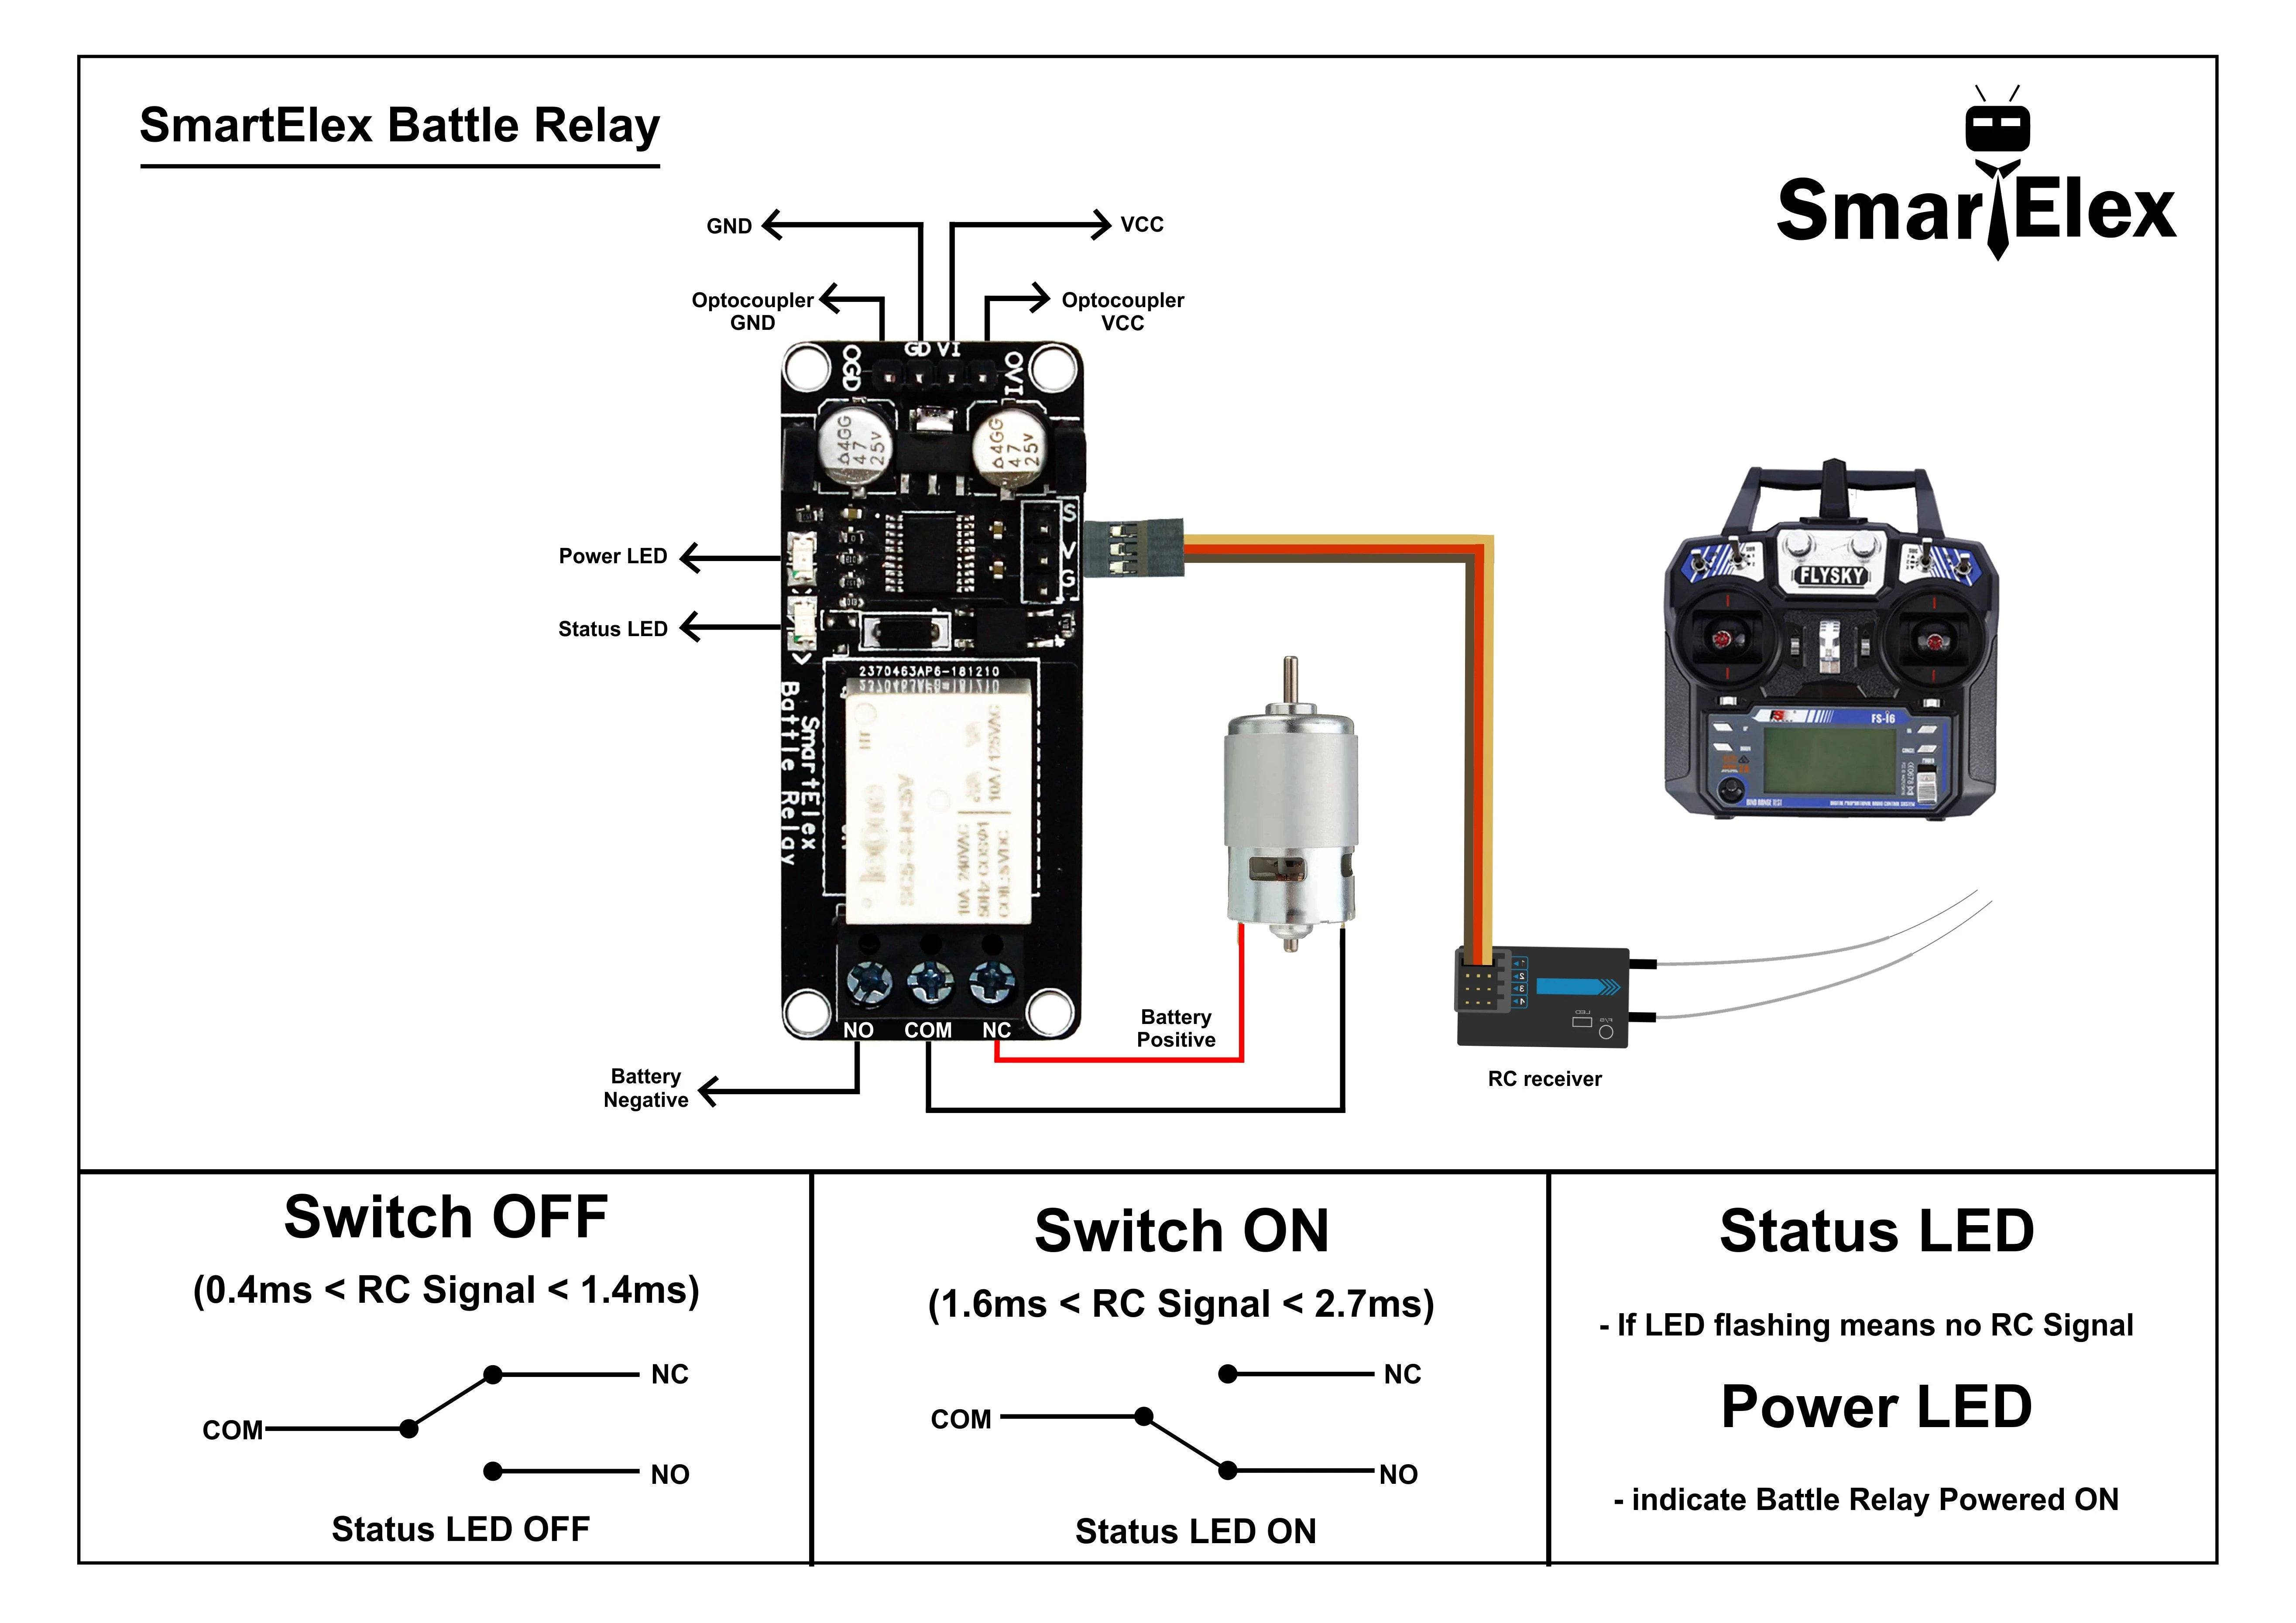 Smartelex Battle Relay